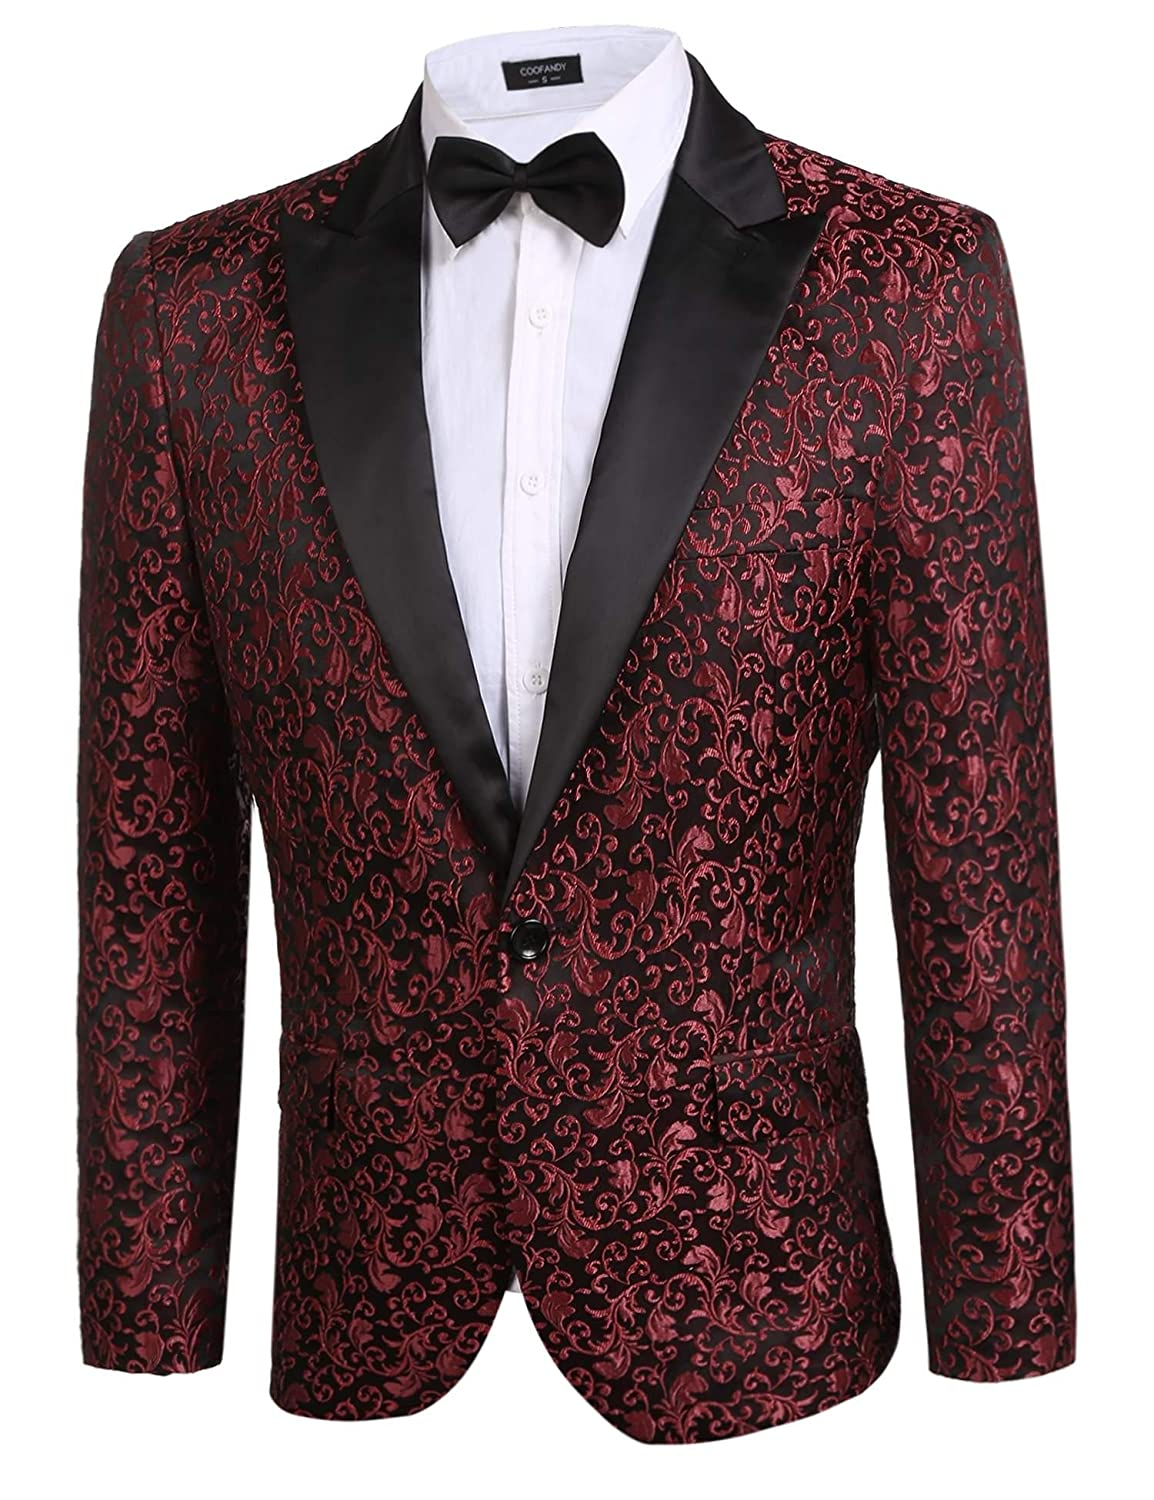 Donet Men's Floral Party Dress Suit Notched Lapel Stylish Dinner Jacket Wedding Blazer Prom Tuxedo XS-3XL